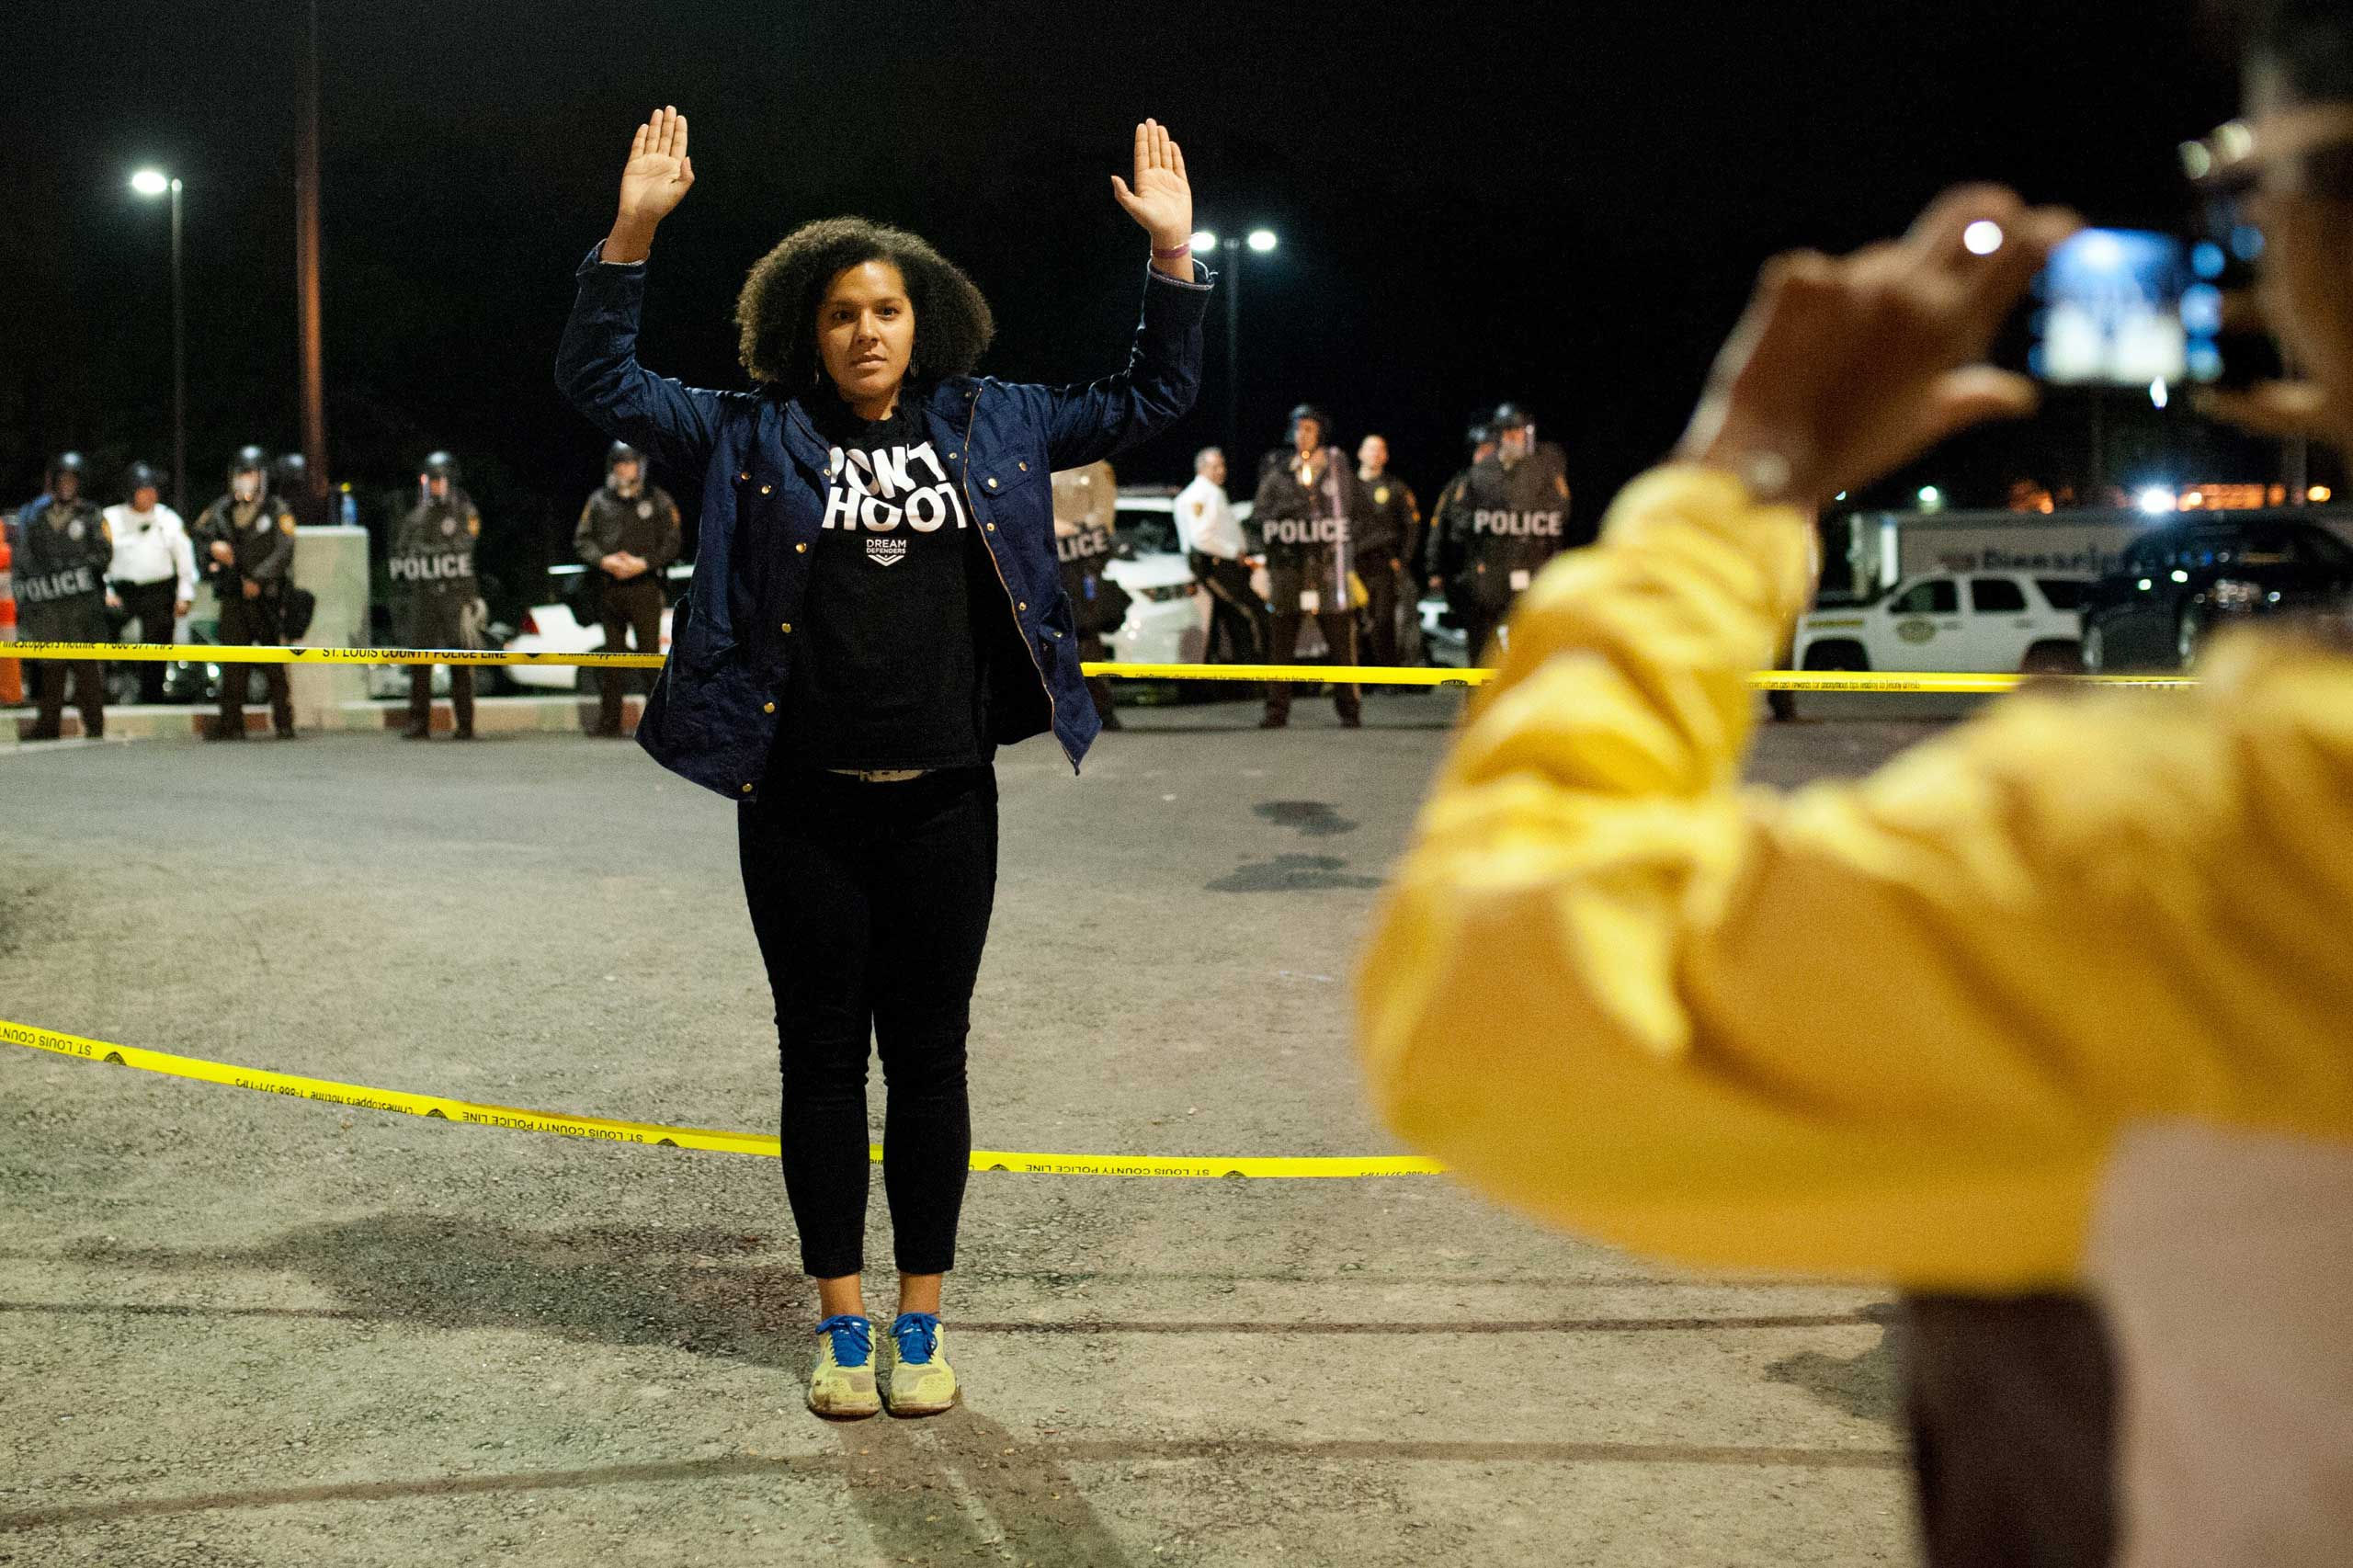 A protester poses for a photo after while protesting at the  Ferguson Police Department in Ferguson, Mo. on Oct. 12, 2014.